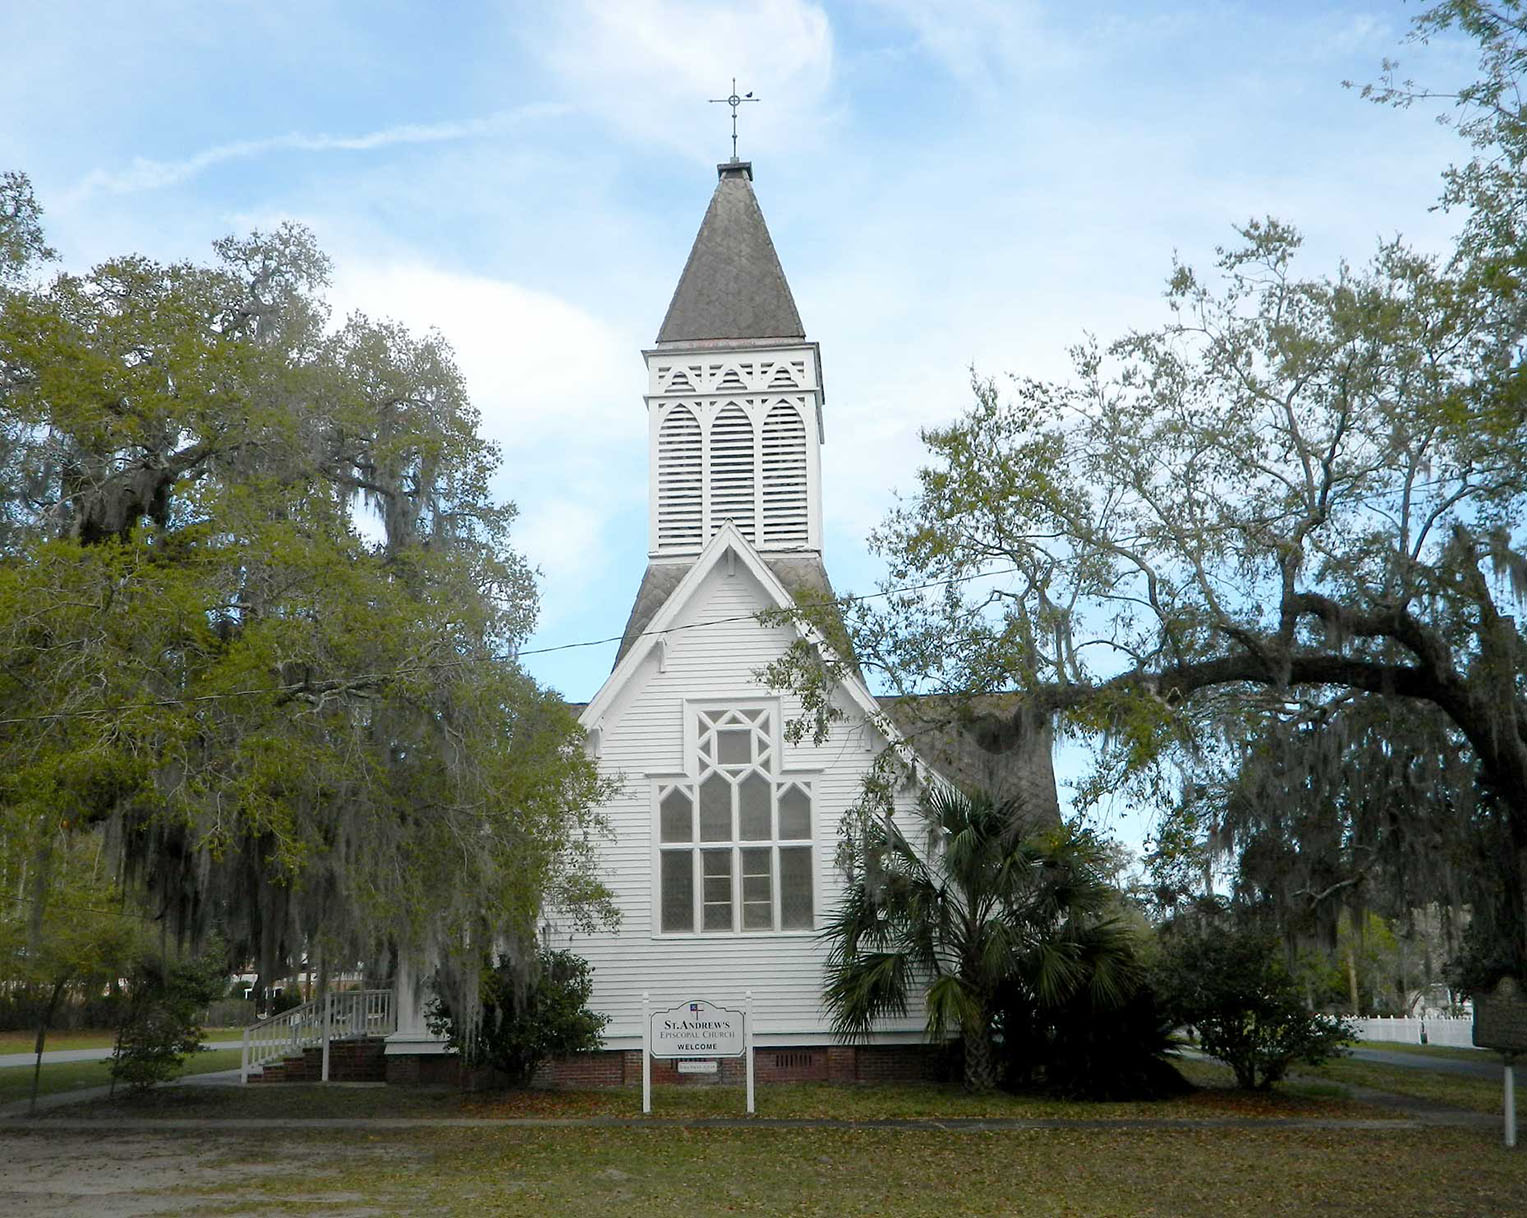 St. Andrews Episcopal Church in Darien GA